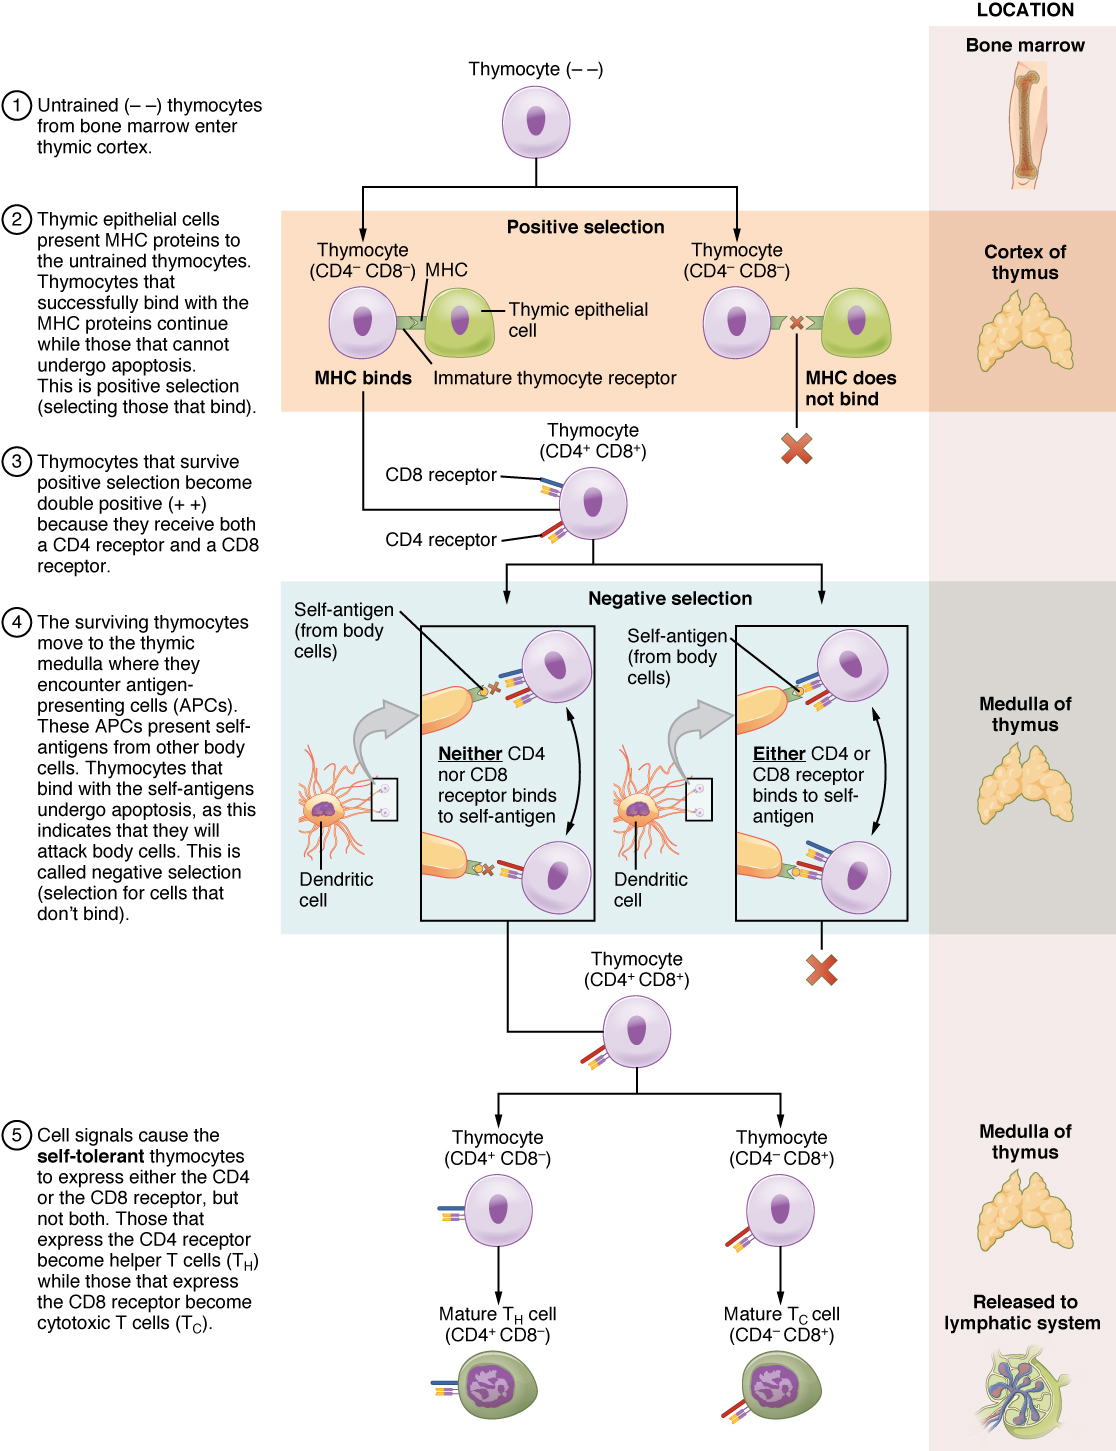 This multipart figure shows the different steps in the differentiation of a thymocyte into T cells. For each step of the process, accompanying text details the steps in the process. The right panel of this image shows the location of the different steps in the process.